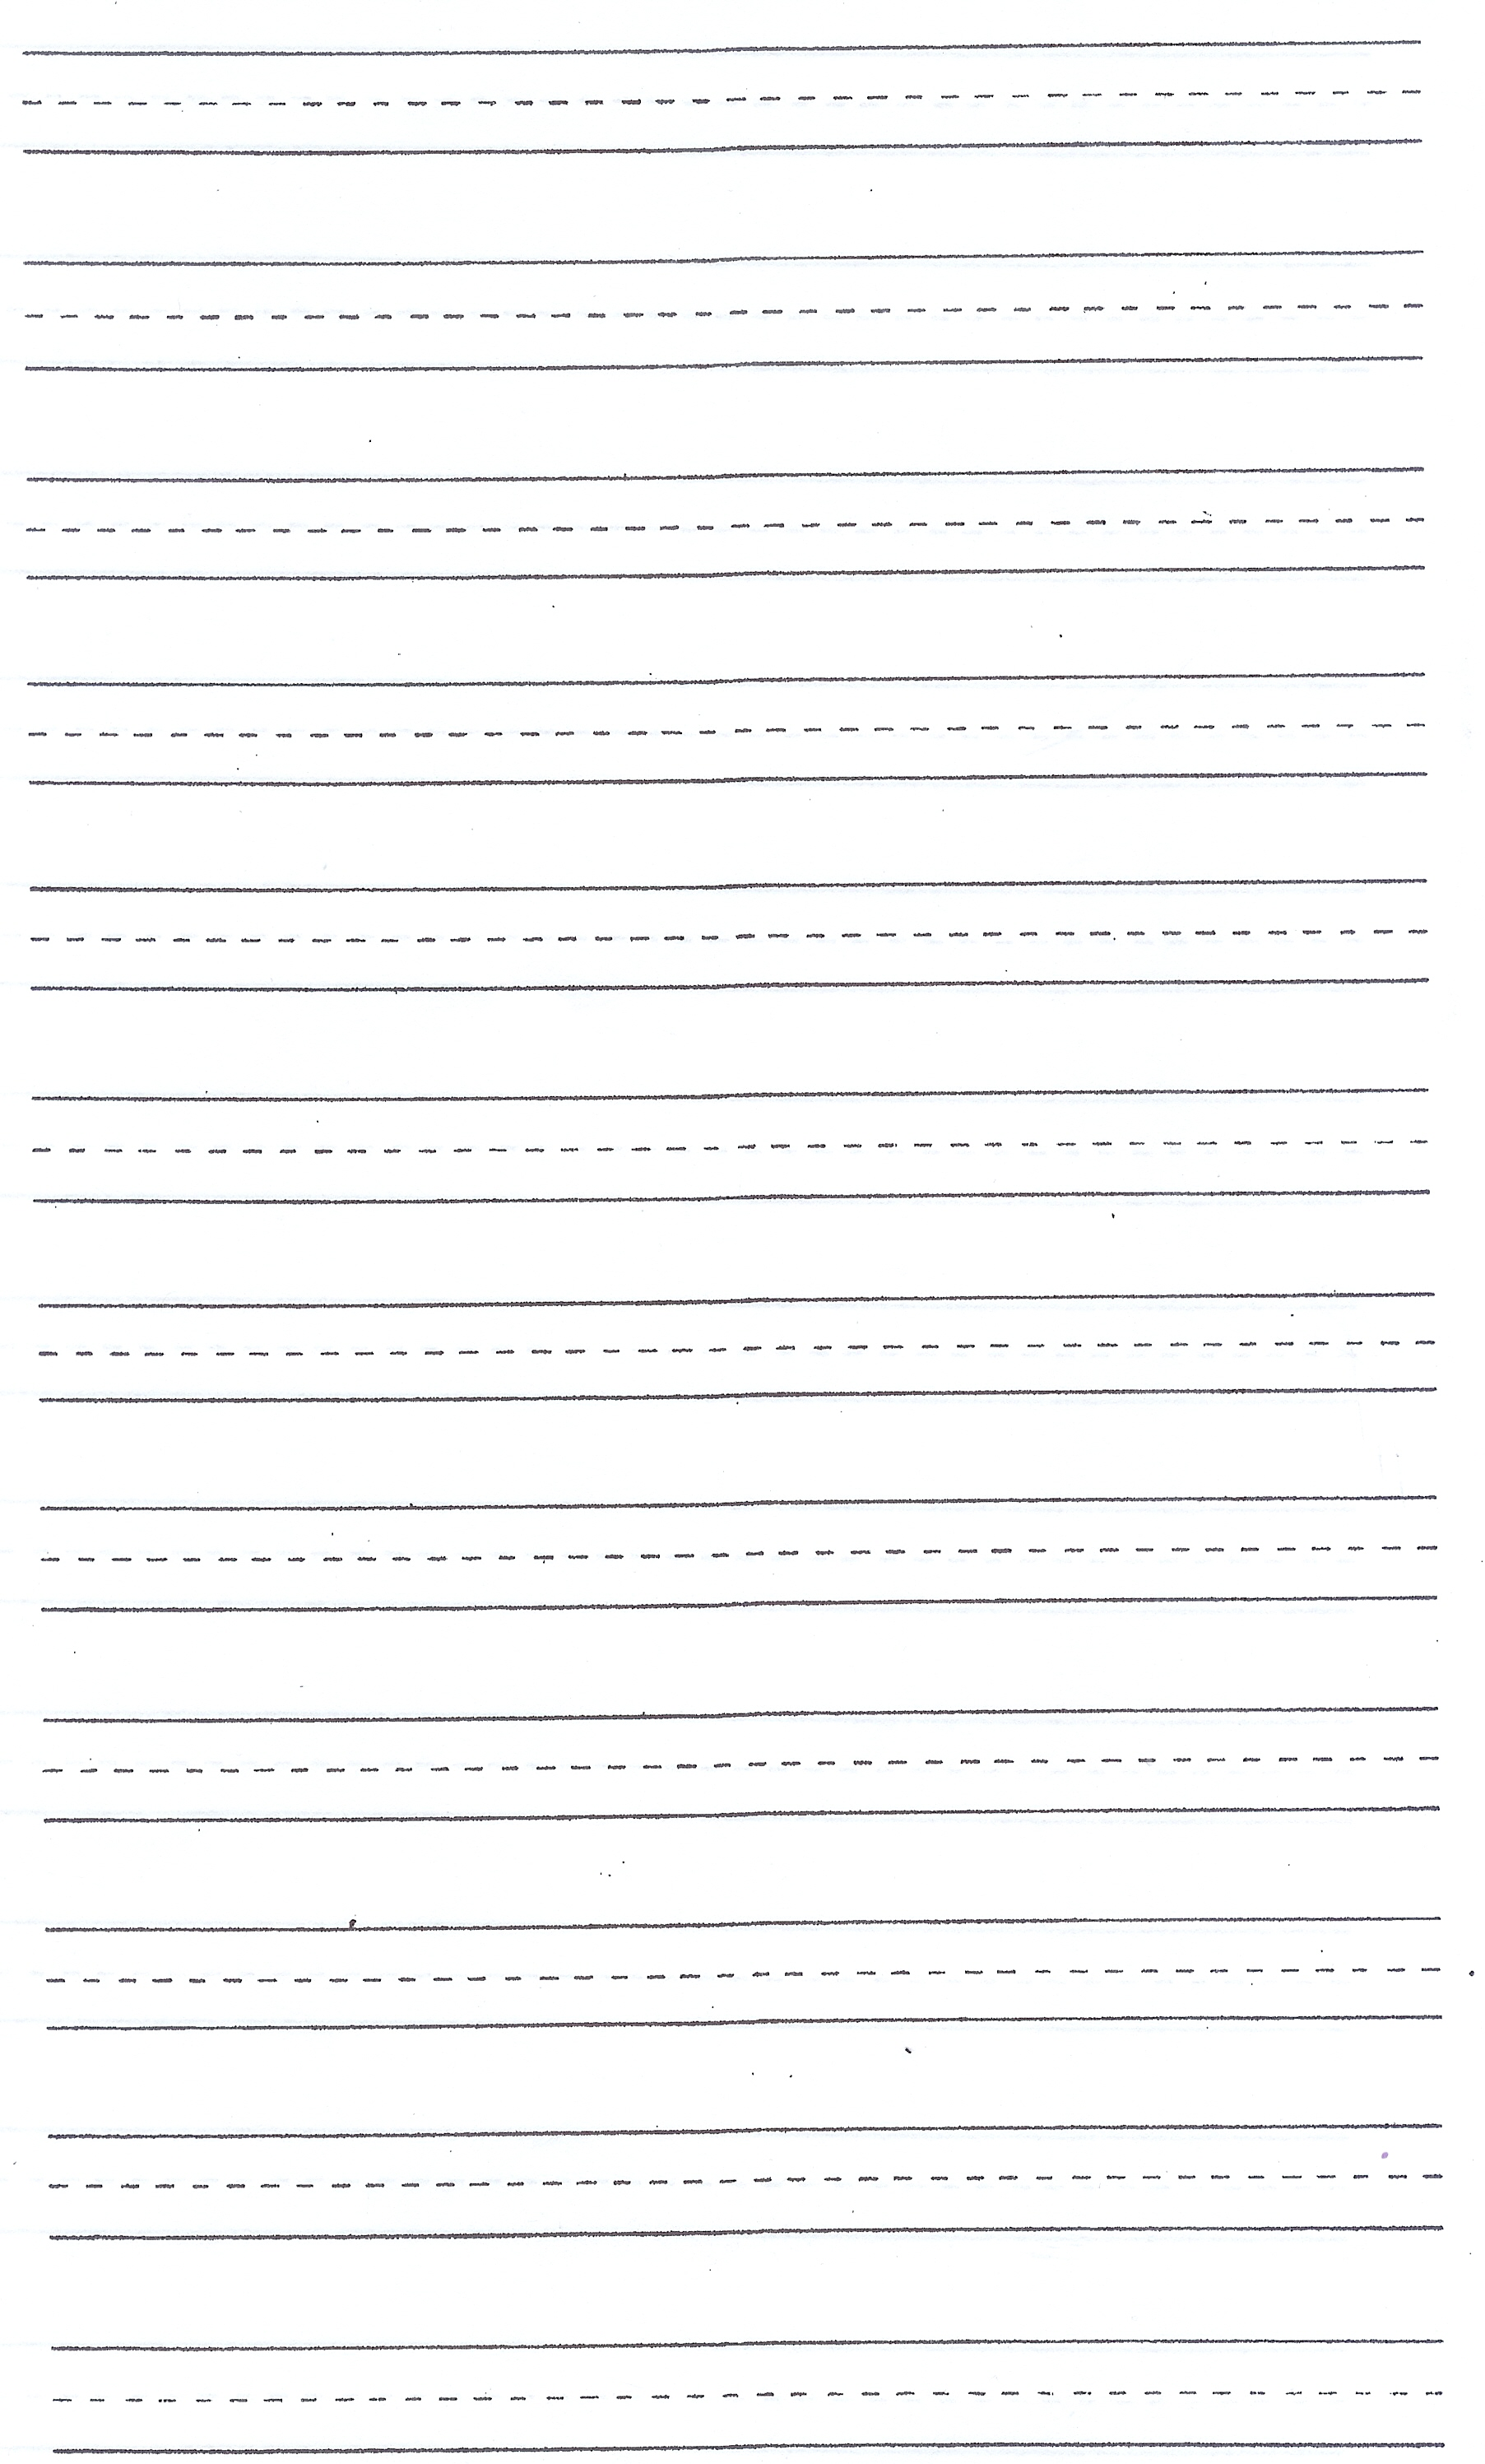 writing paper free teddy bear writing paper for kids writing paper ...